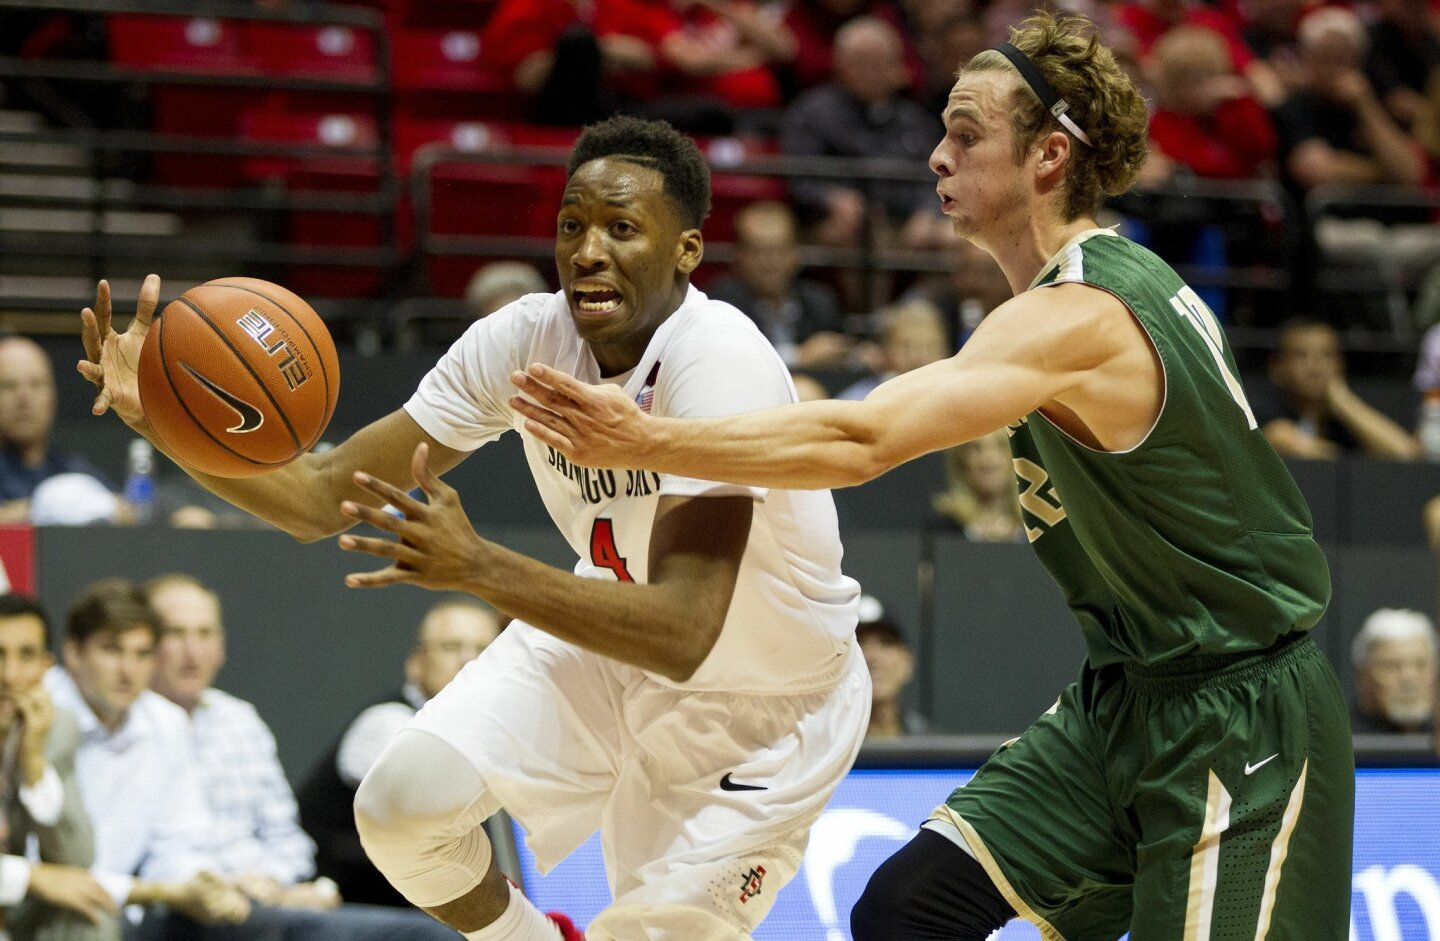 SDSU vs Point Loma Hoops 11/7/2014